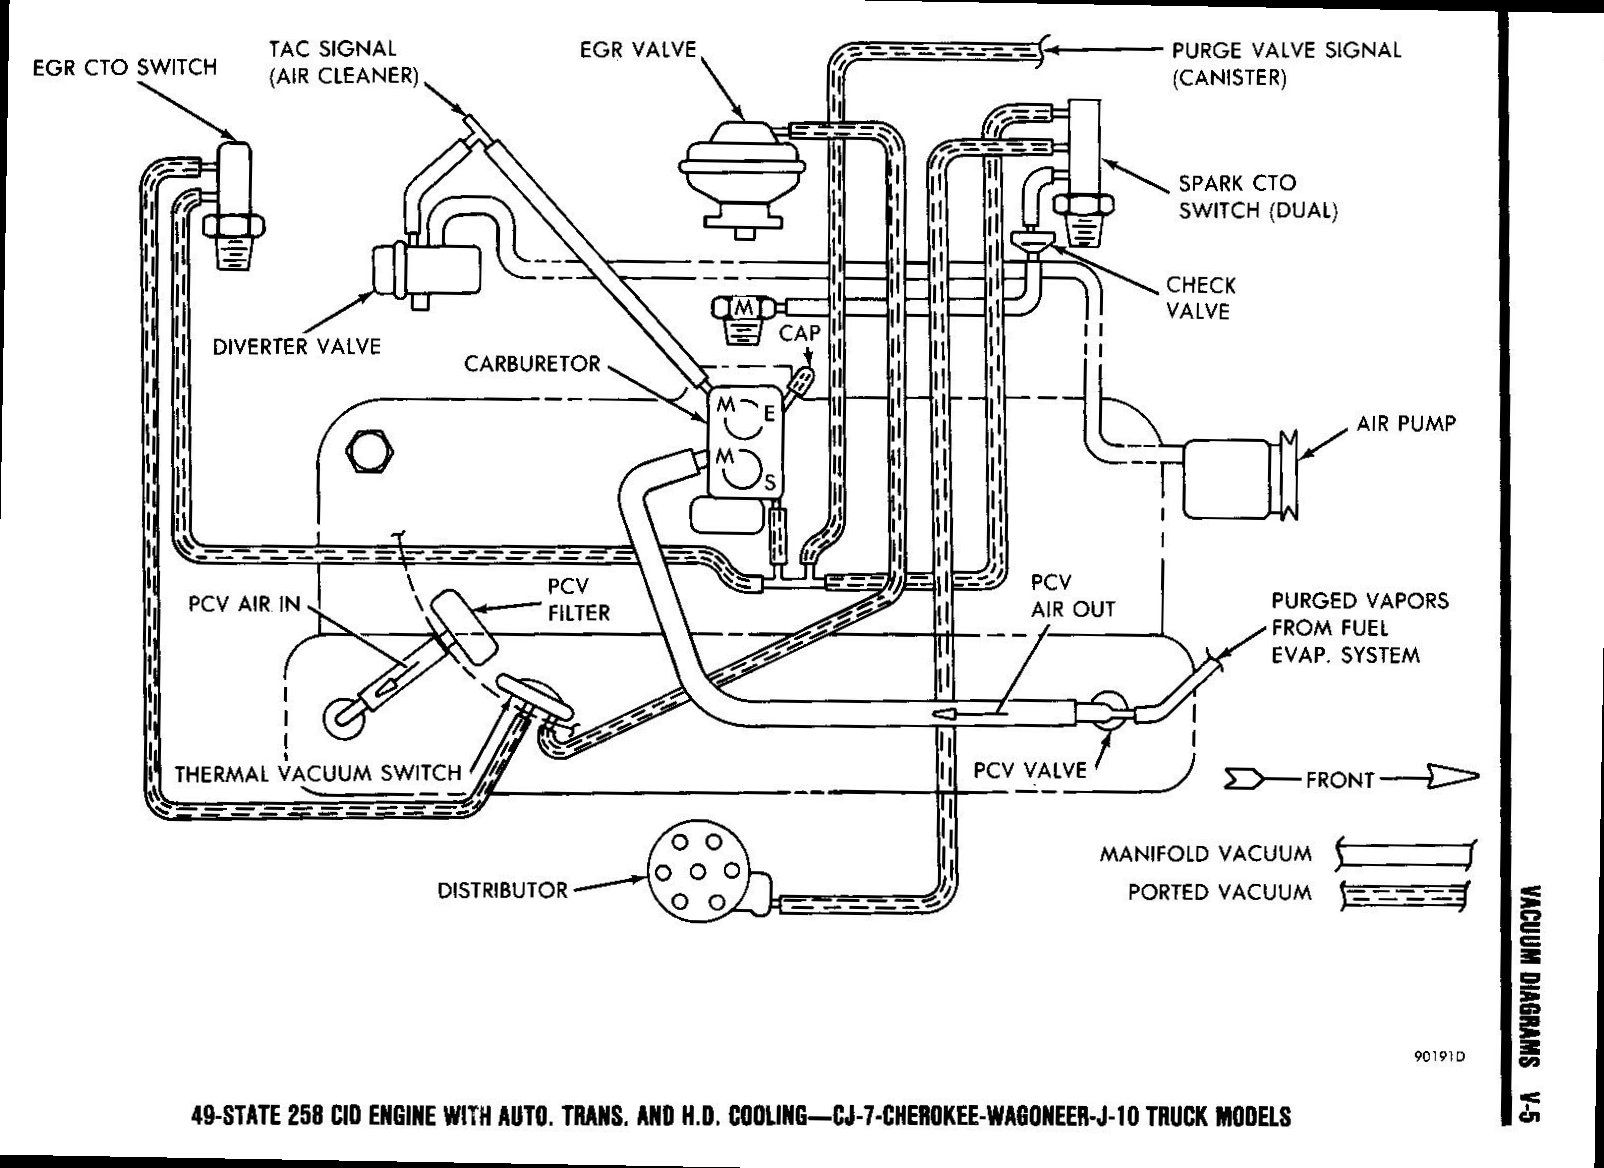 1979 jeep cj5 engine diagram